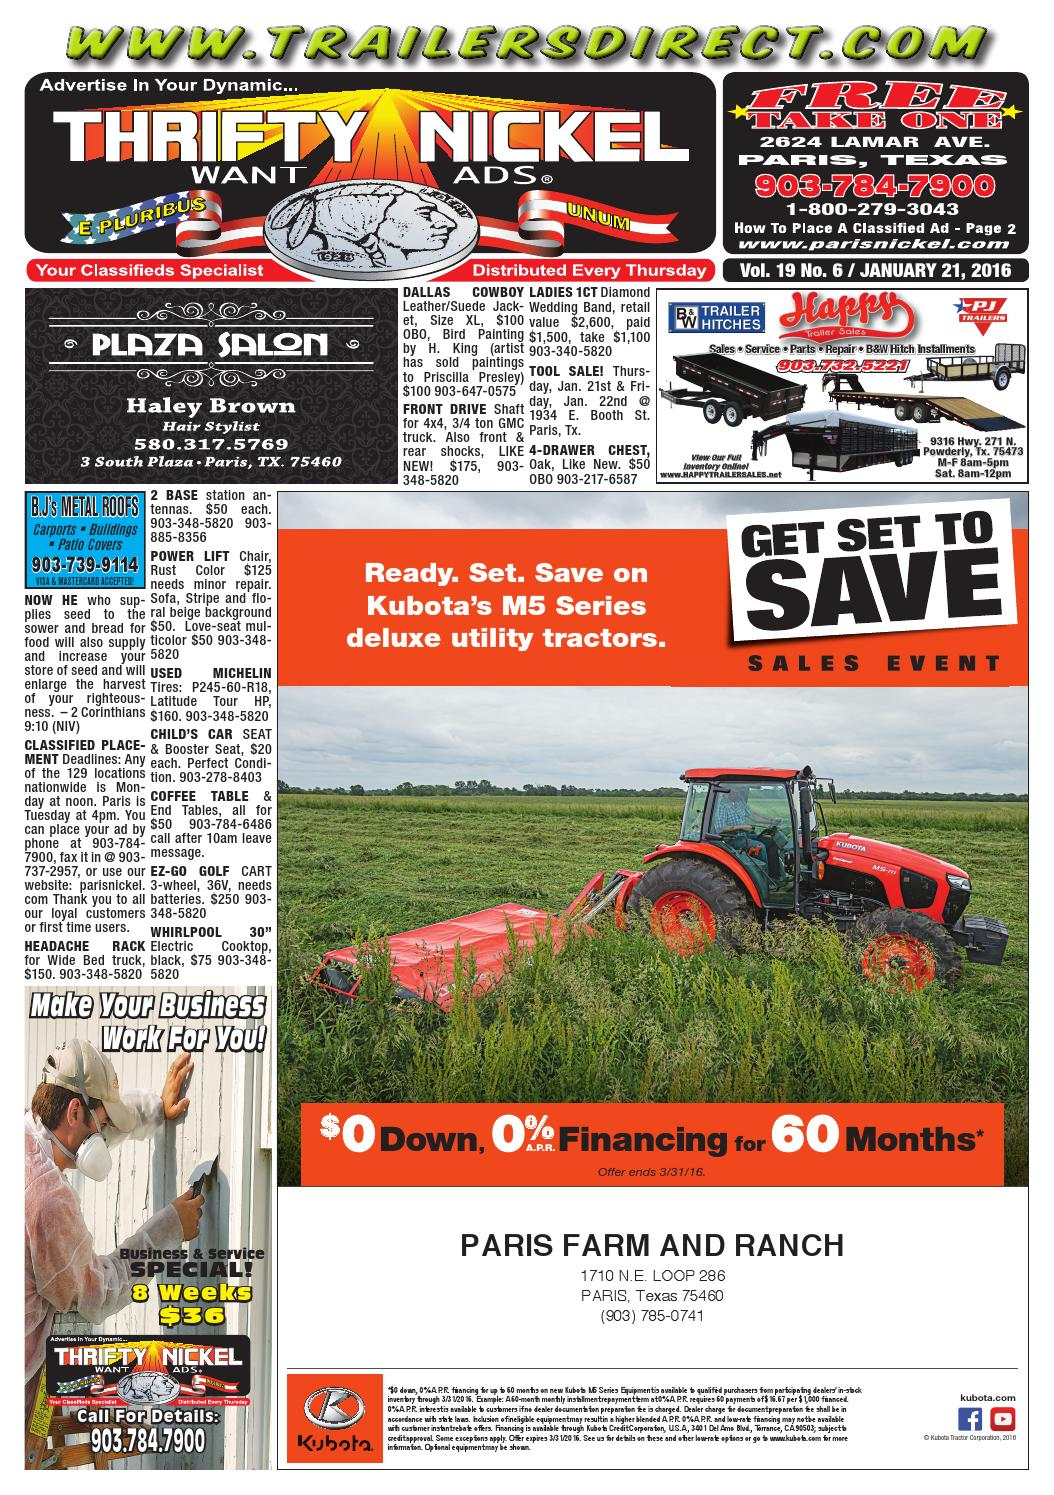 January 21 2016 digital edition by paris thrifty nickel Paris building supply paris tn